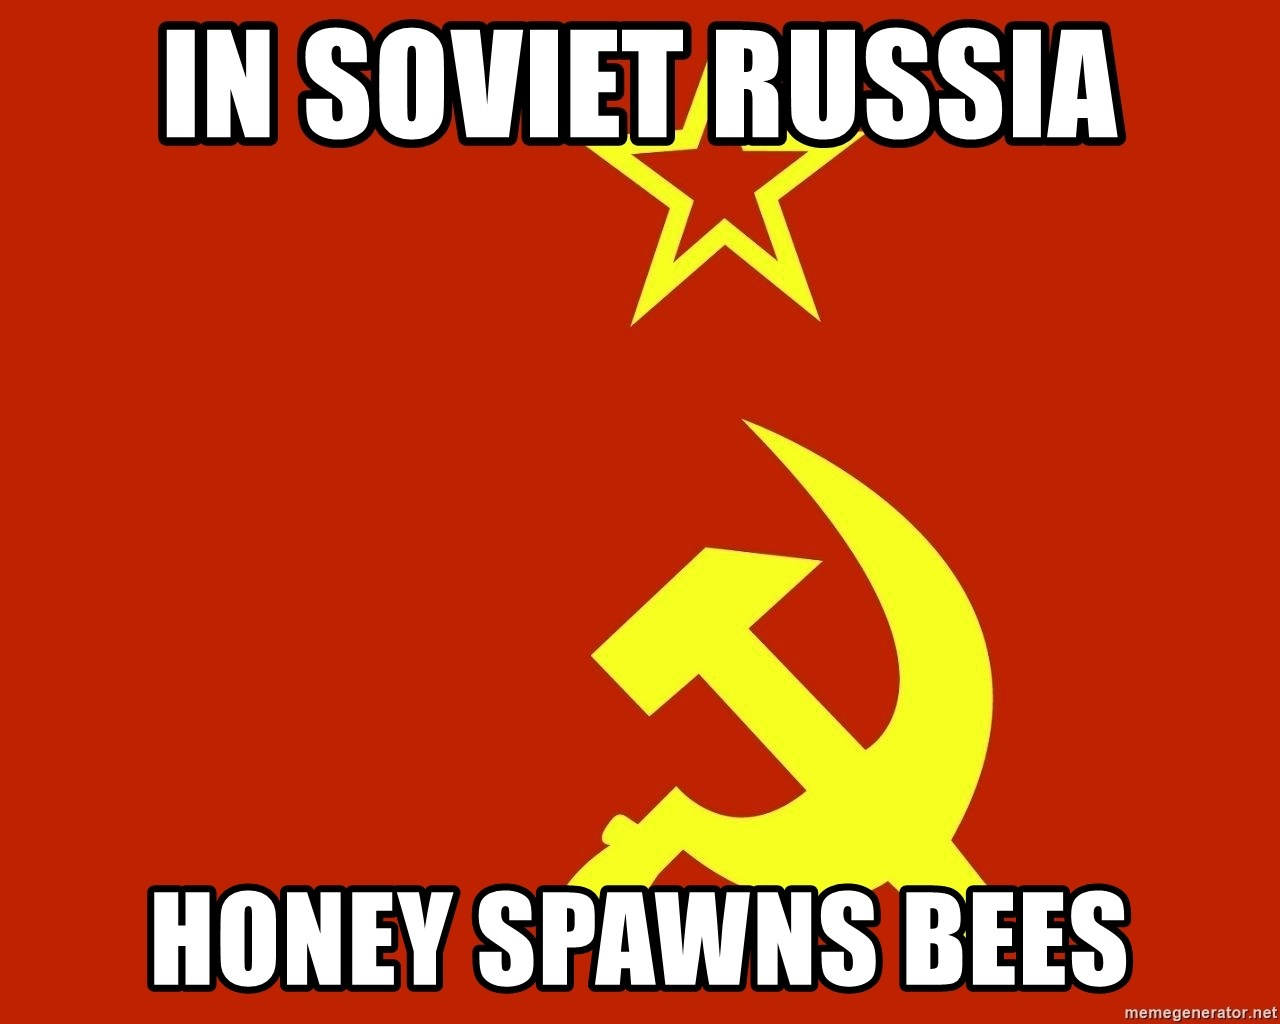 In Soviet Russia - in soviet russia honey spawns bees